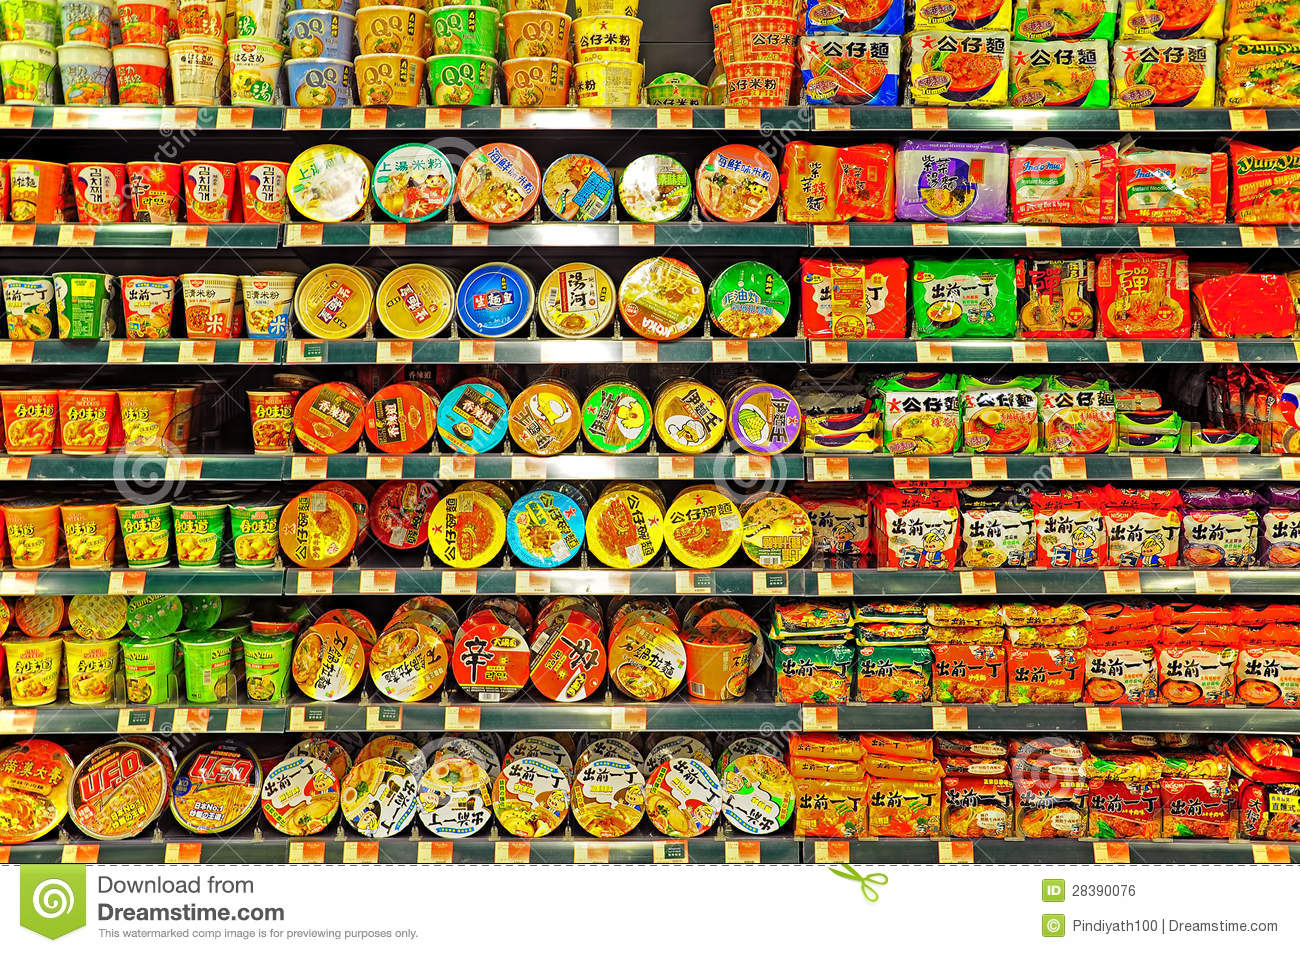 Assortment of flavored instant noodles displayed on shelves at a